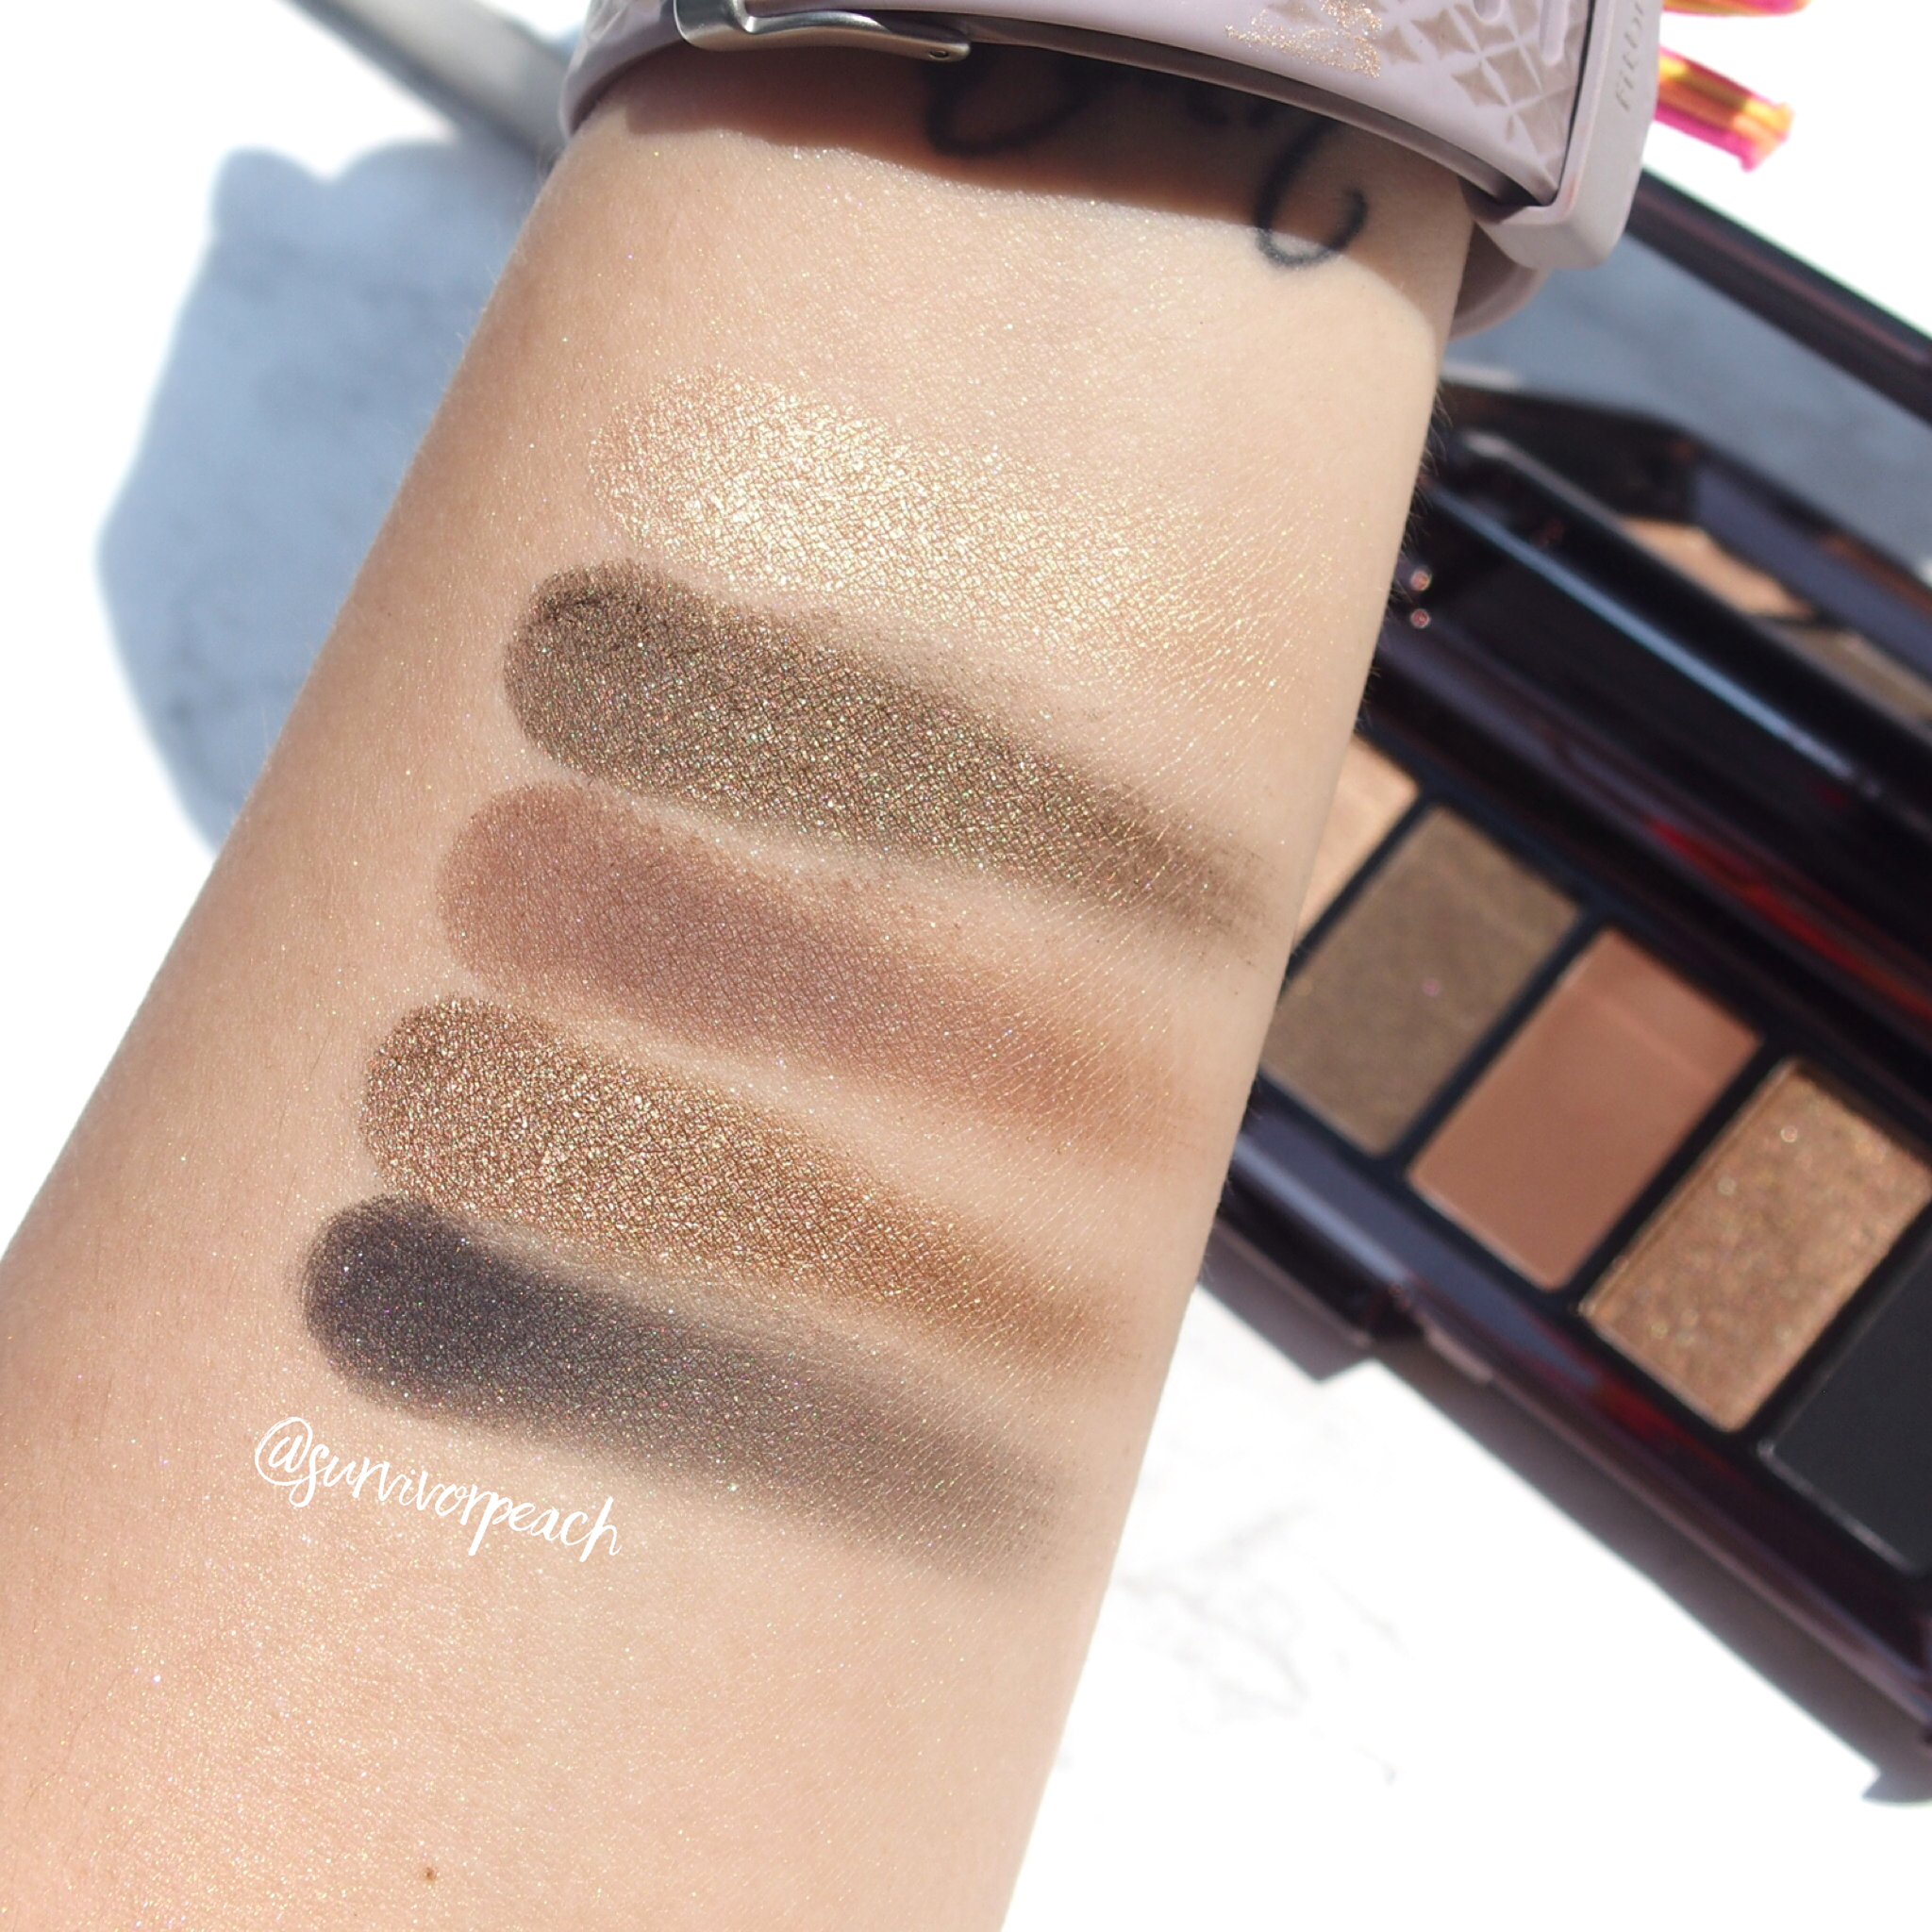 Swatches of the Hourglass Graphik Eyeshadow Palette Vista